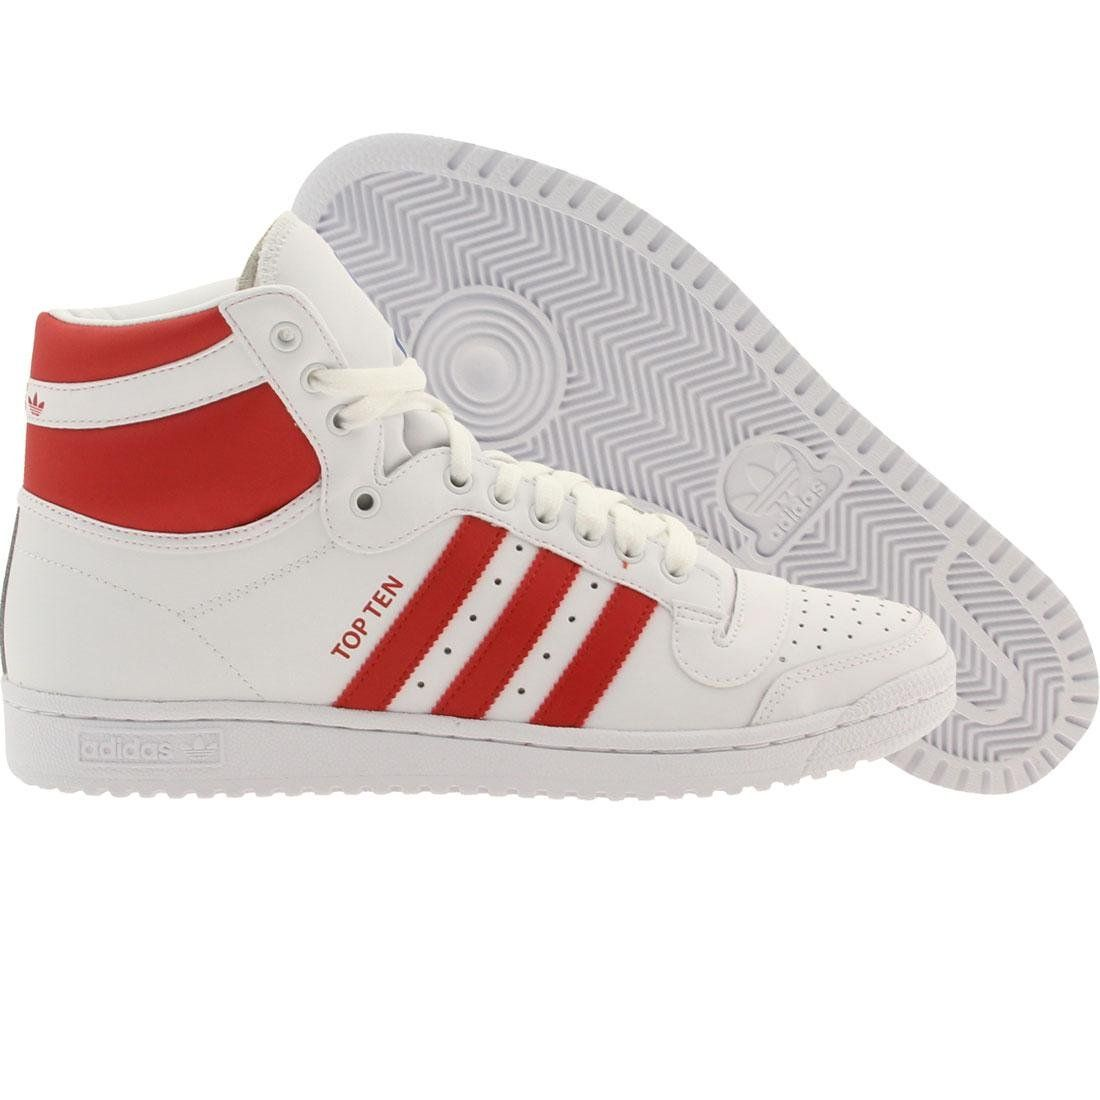 adidas Originals Men's Top Ten Hi Basketball Shoe, White/Red/Blue, 12